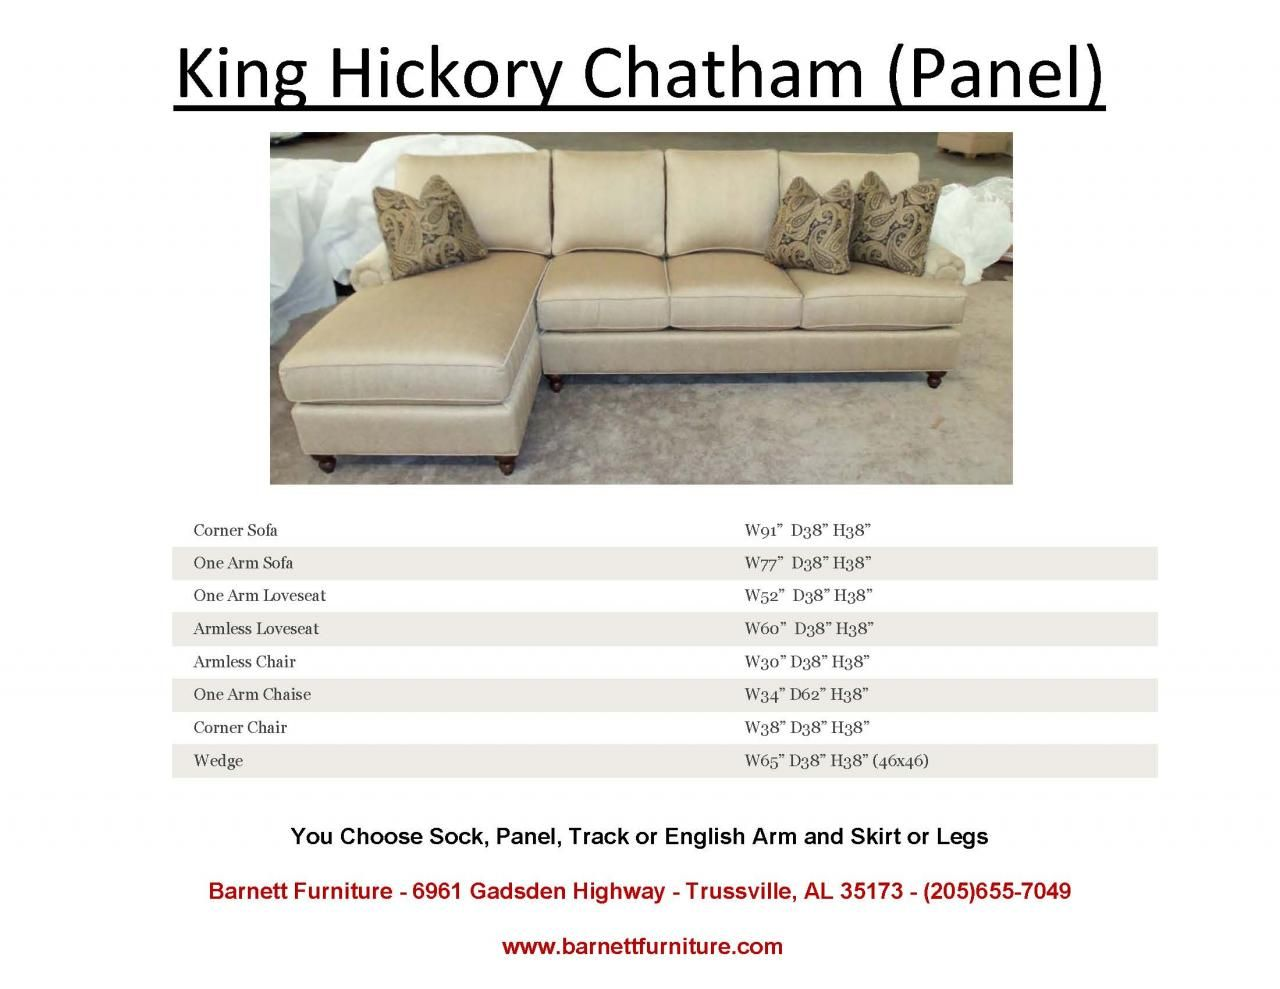 Peachy King Hickory Chatham Sectional With A Panel Arm And A Turned Machost Co Dining Chair Design Ideas Machostcouk